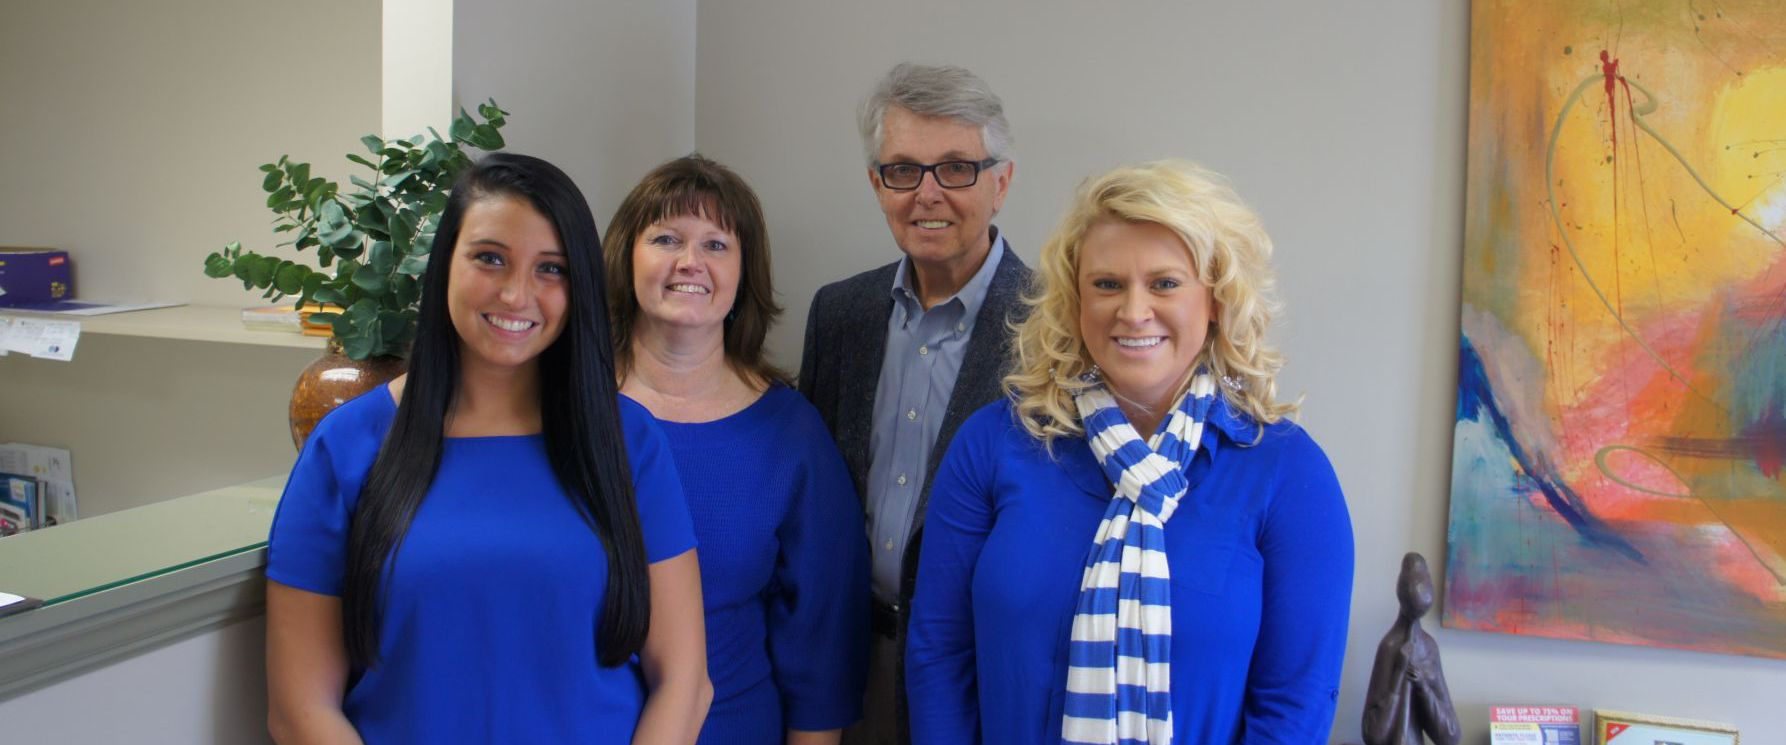 Our family medicine practice in Ft Mitchell, KY